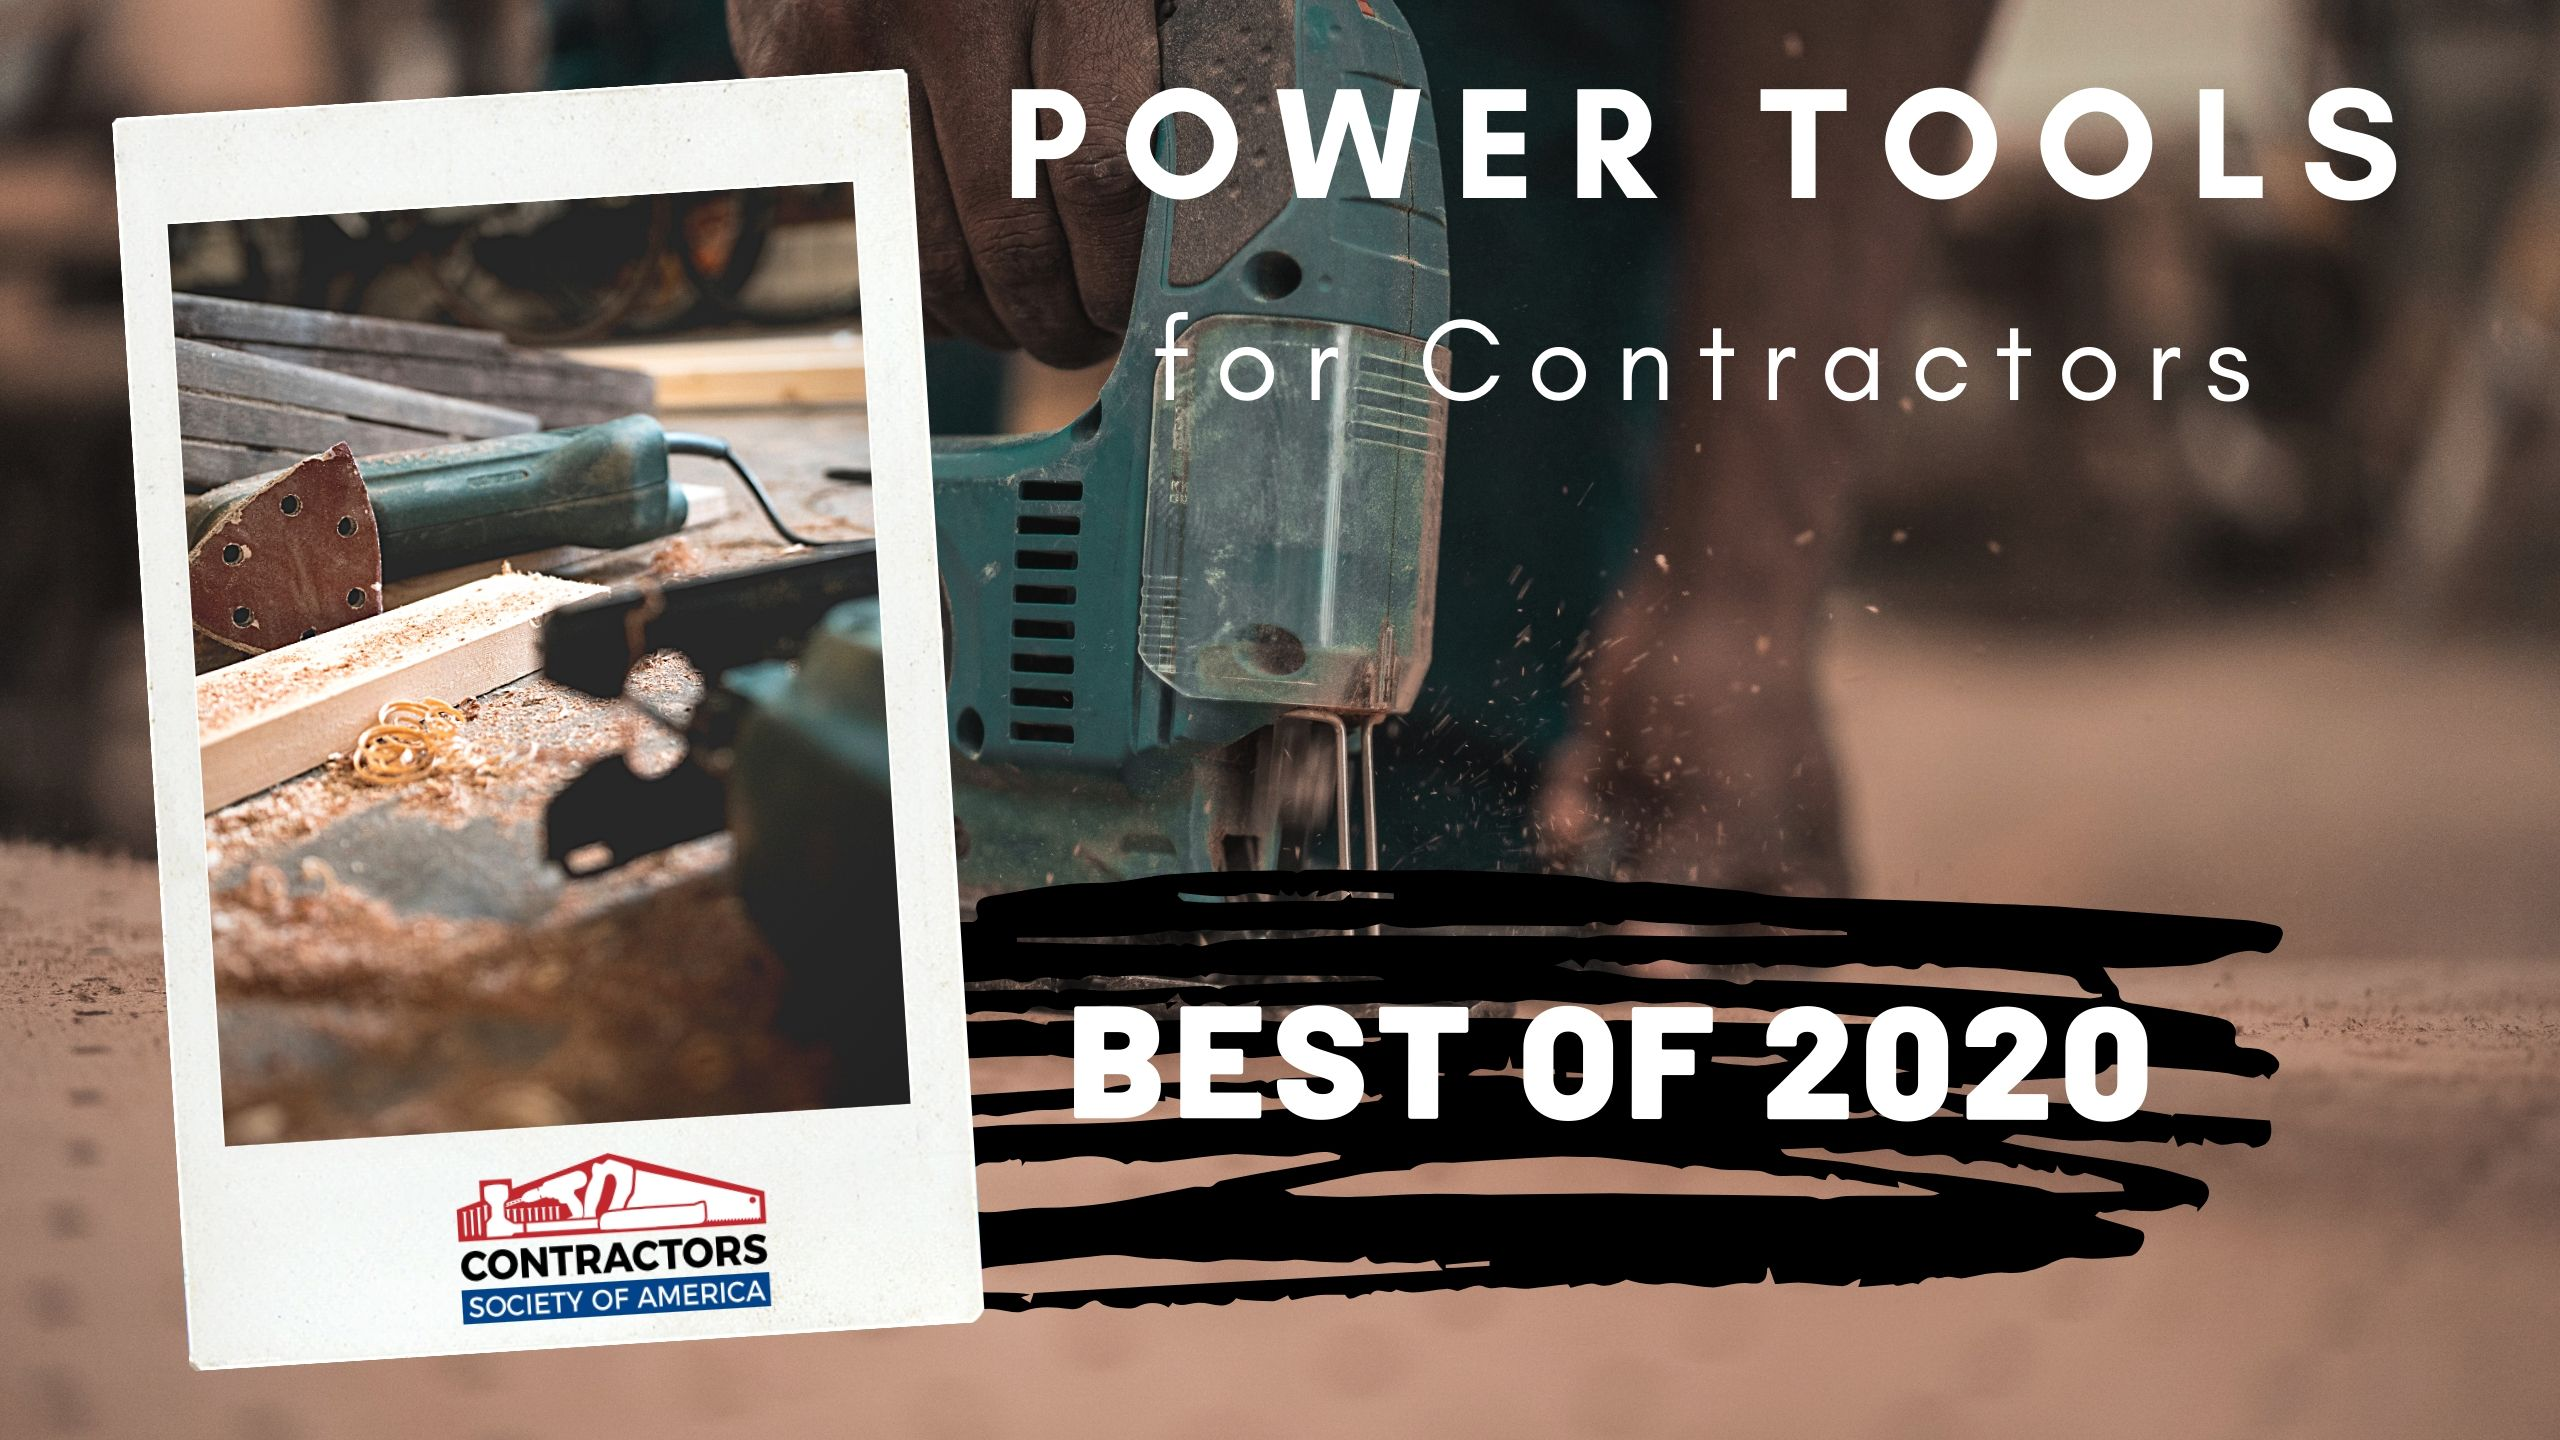 Best Power Tool Brands for Contractors Graphic